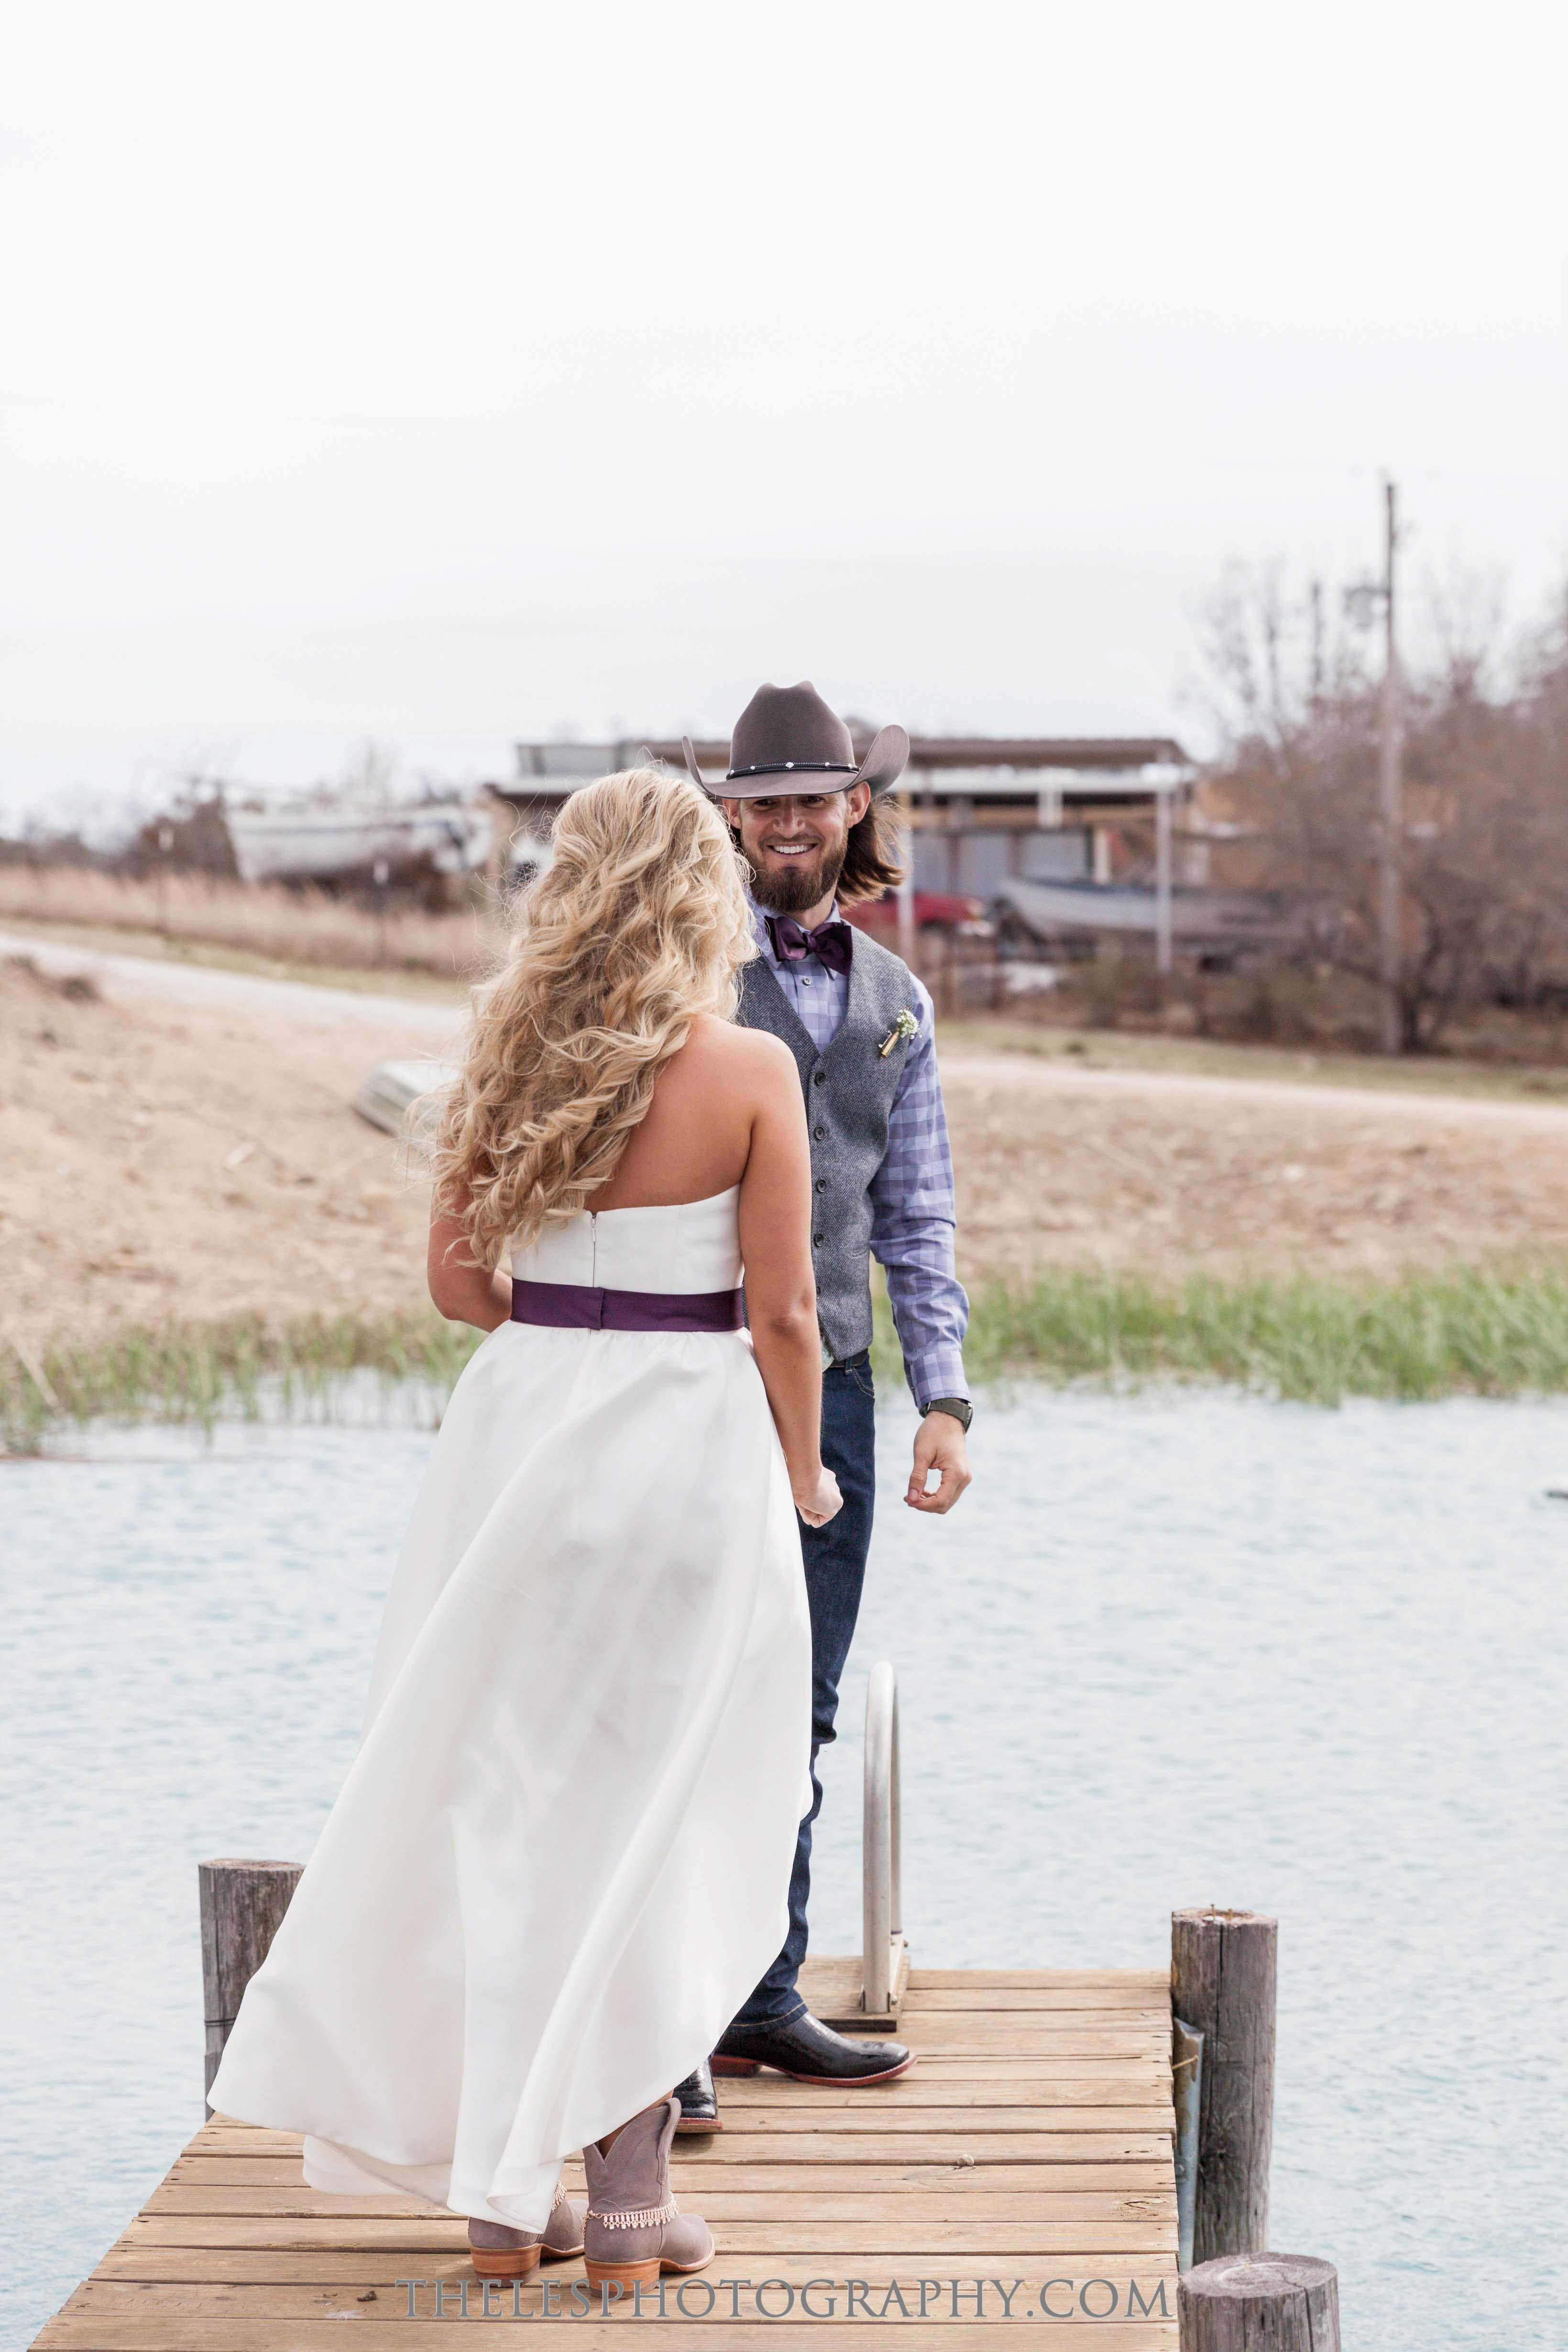 038 Dallas Wedding Photography - Photographer - The Les Photography - Fort Country Memories Wedding